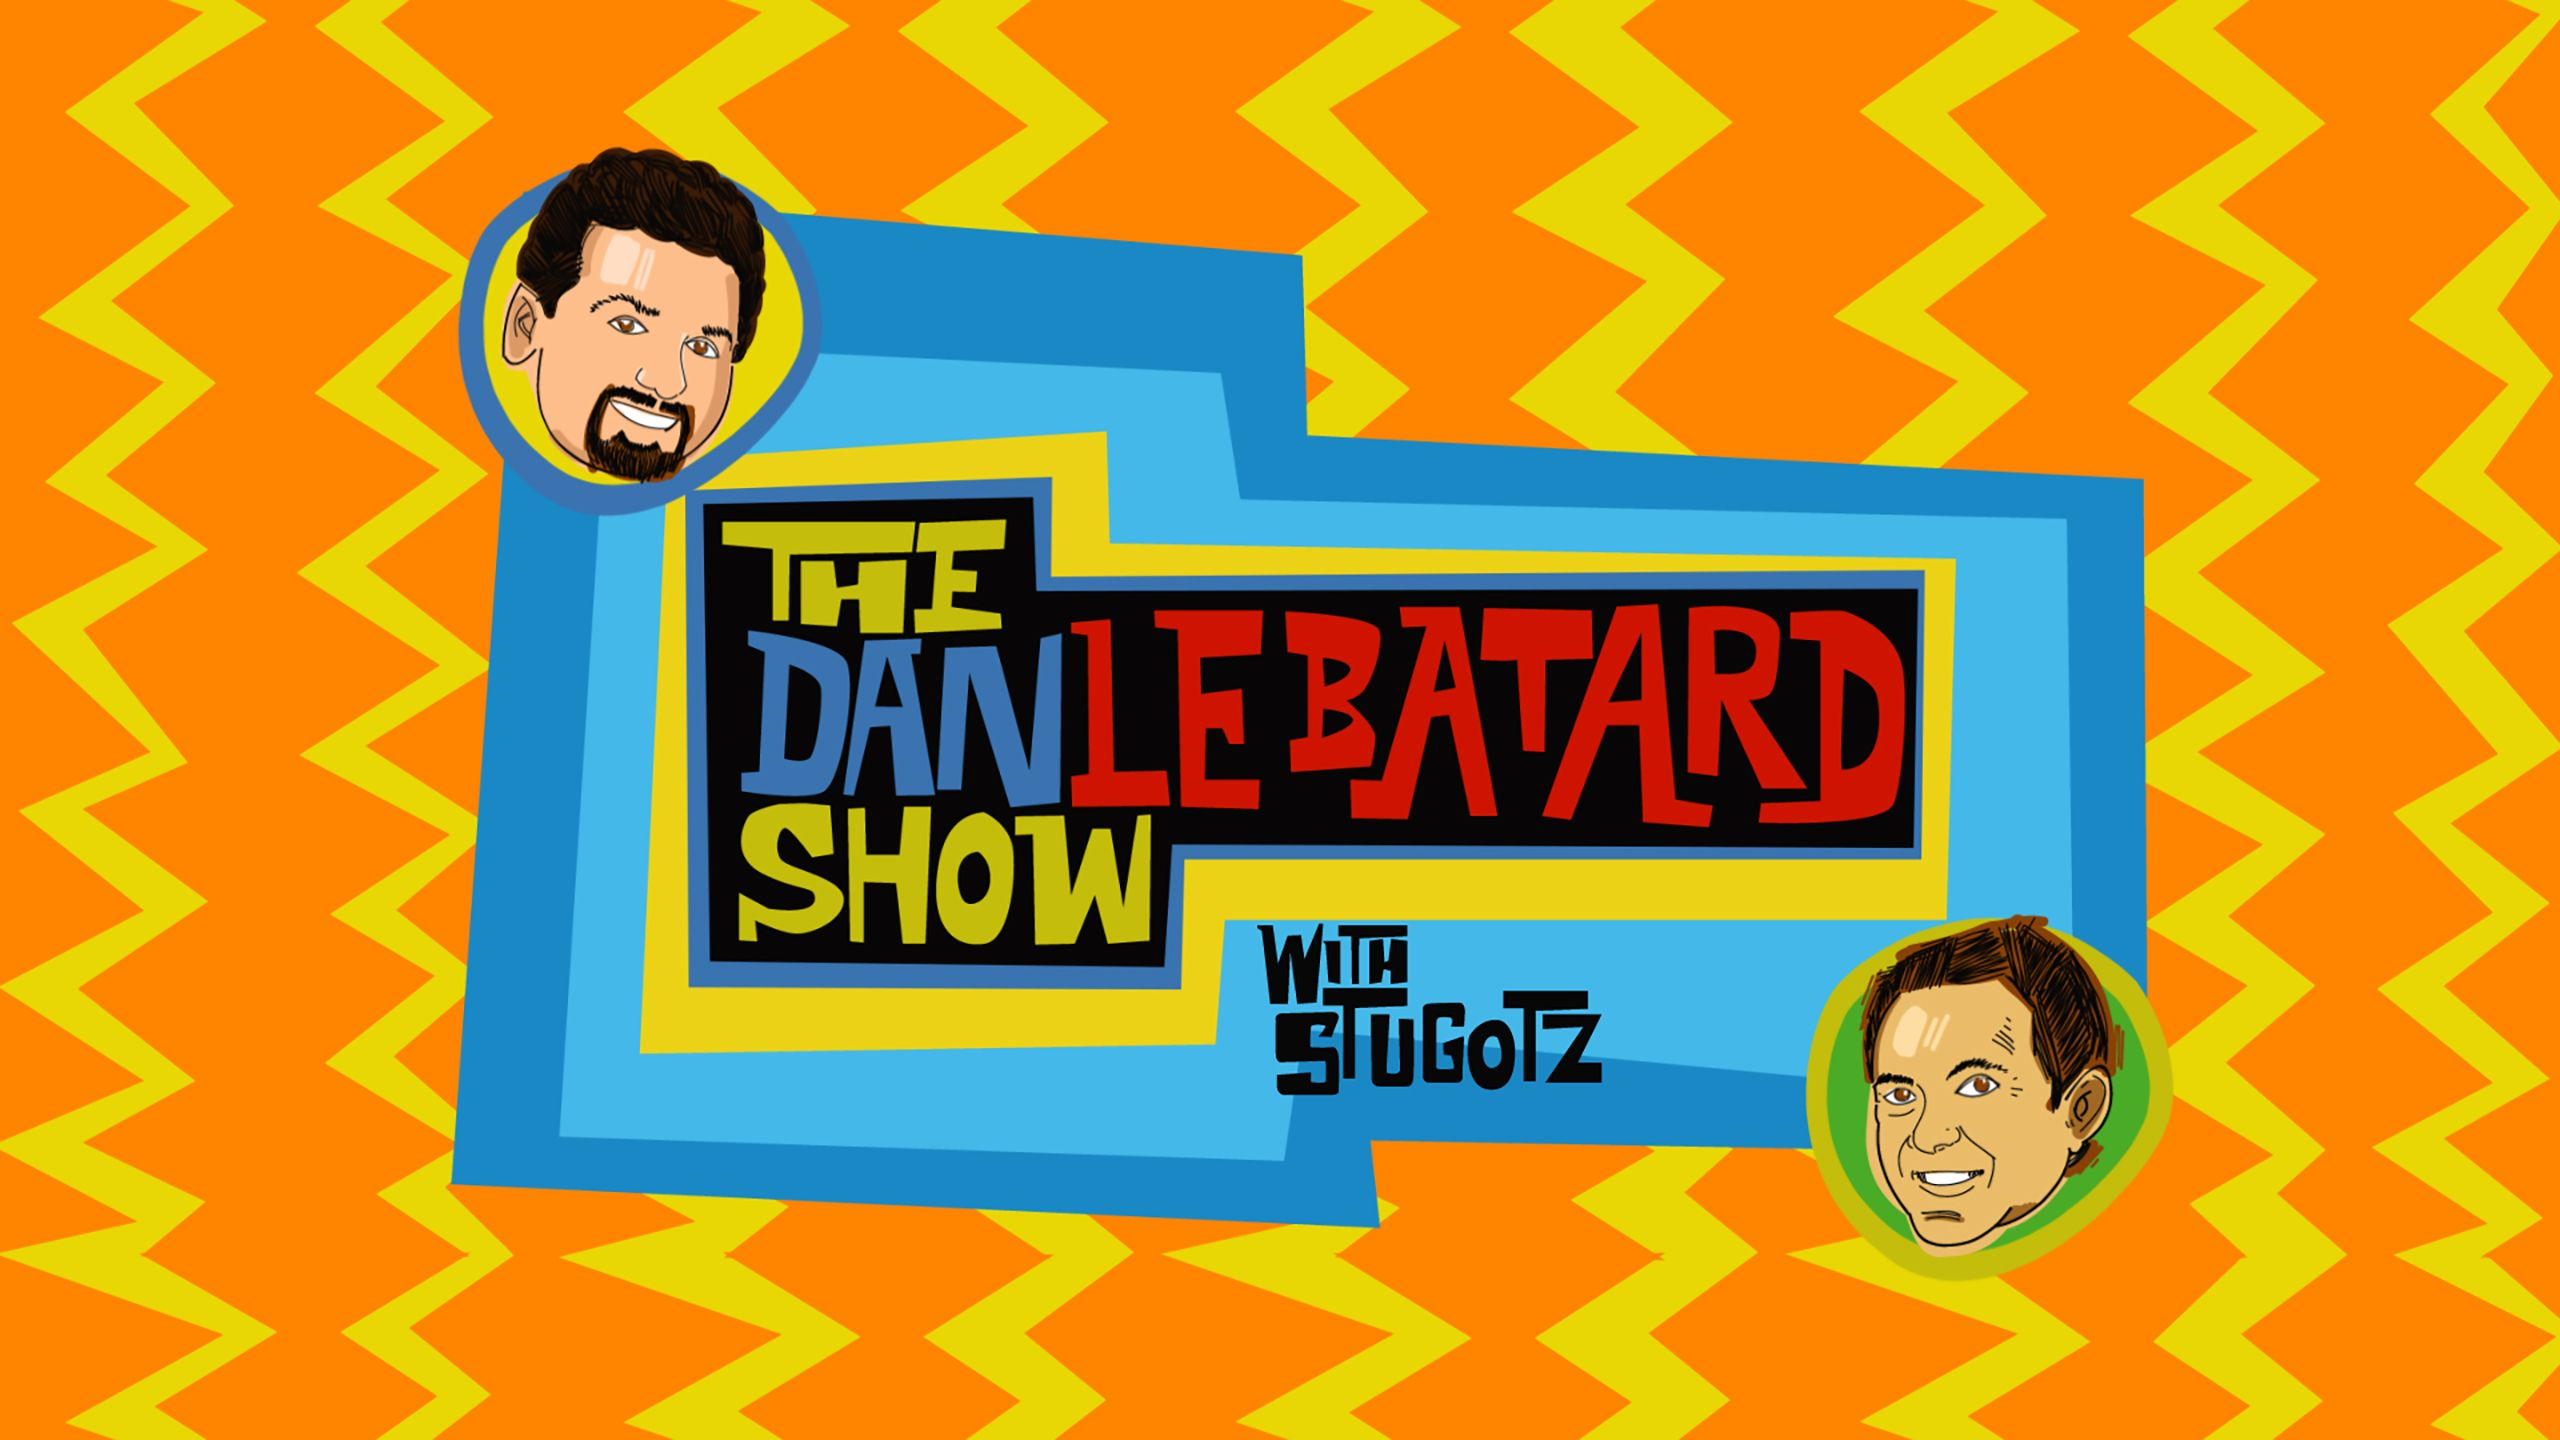 Thu, 12/14 - The Dan Le Batard Show with Stugotz Presented by Progressive